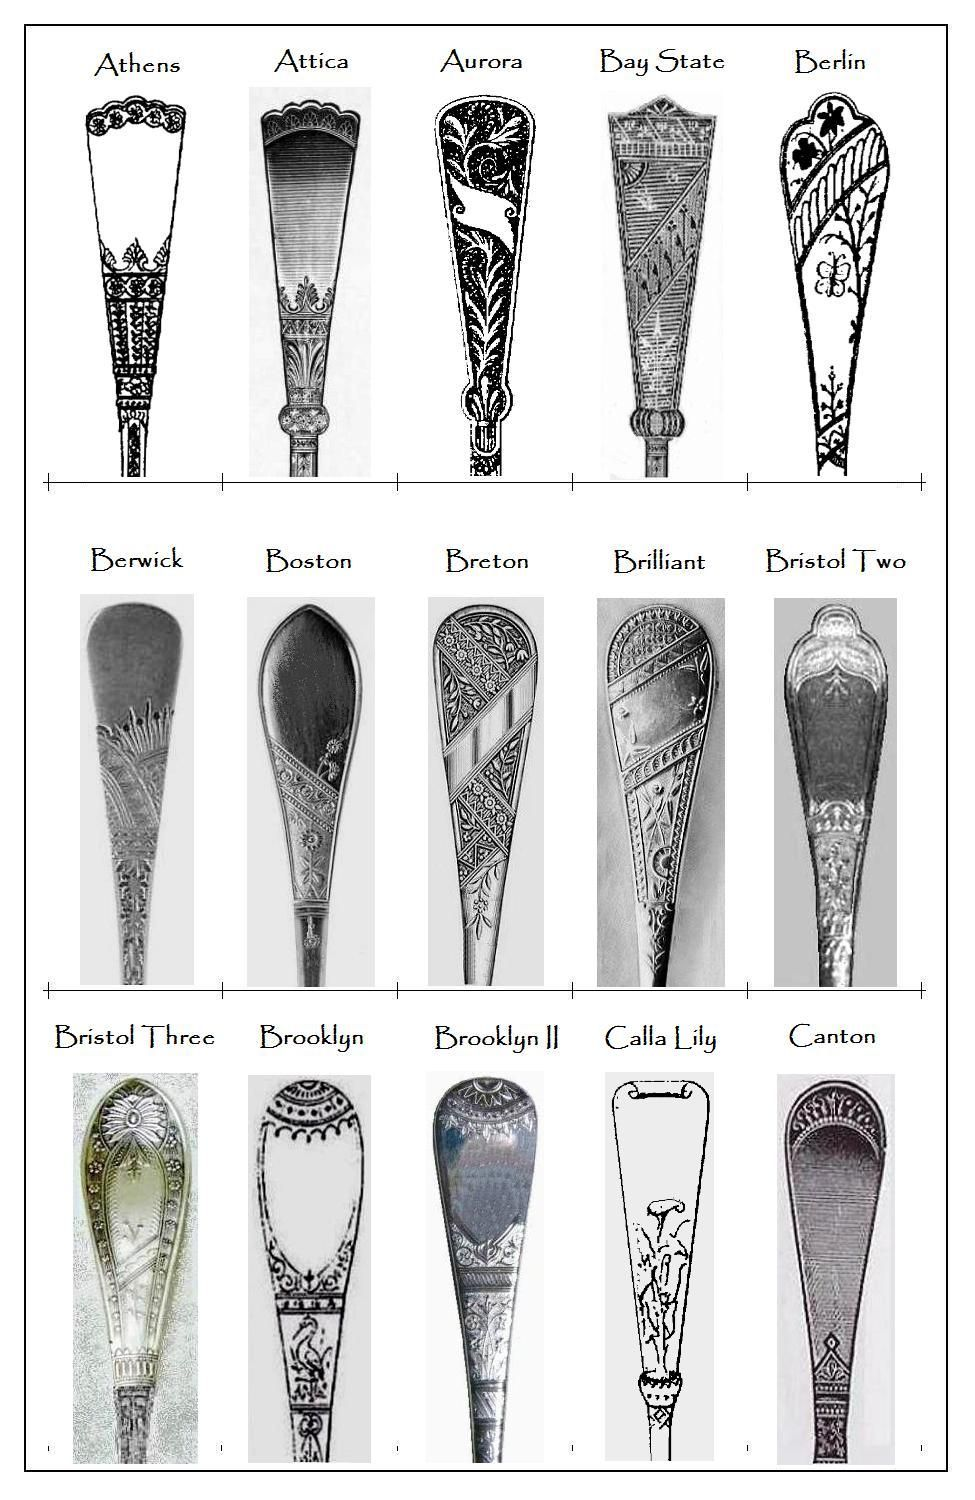 Some 19th Century Flatware Patterns My Stainless Steel